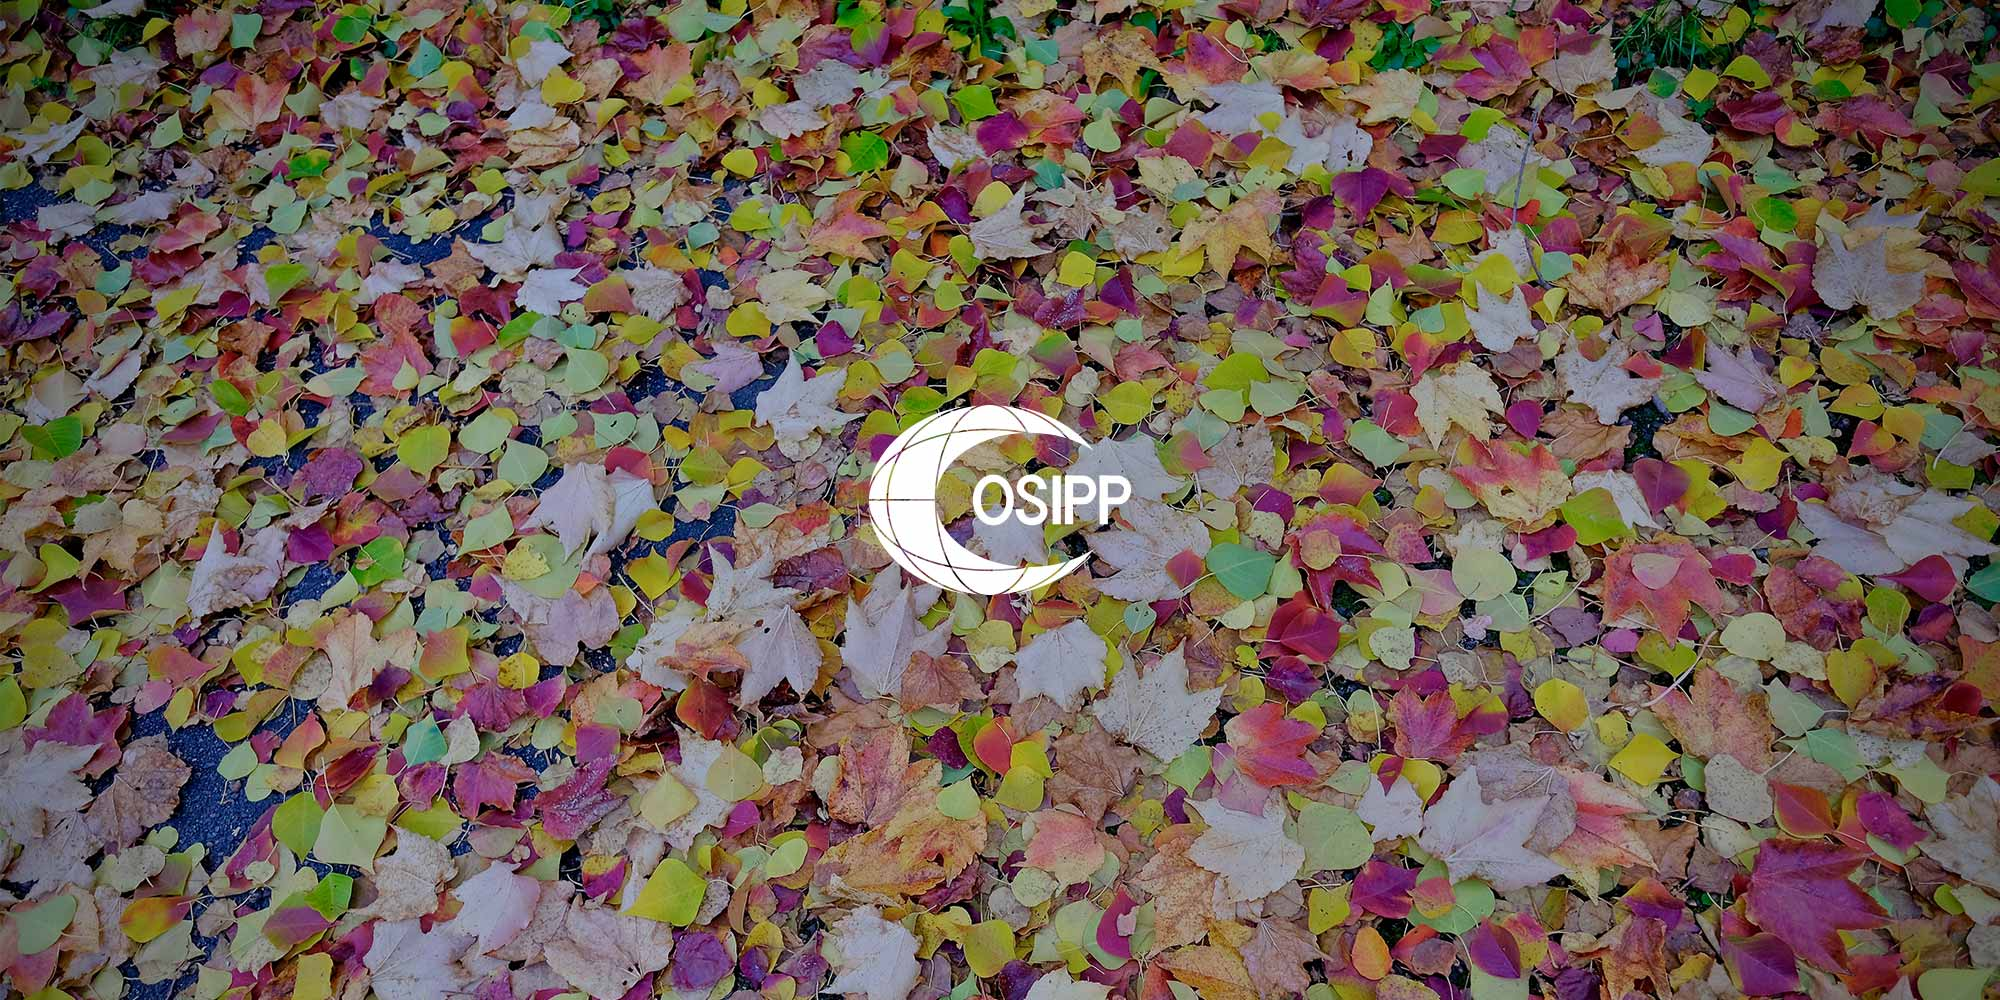 OSIPP leaves logo